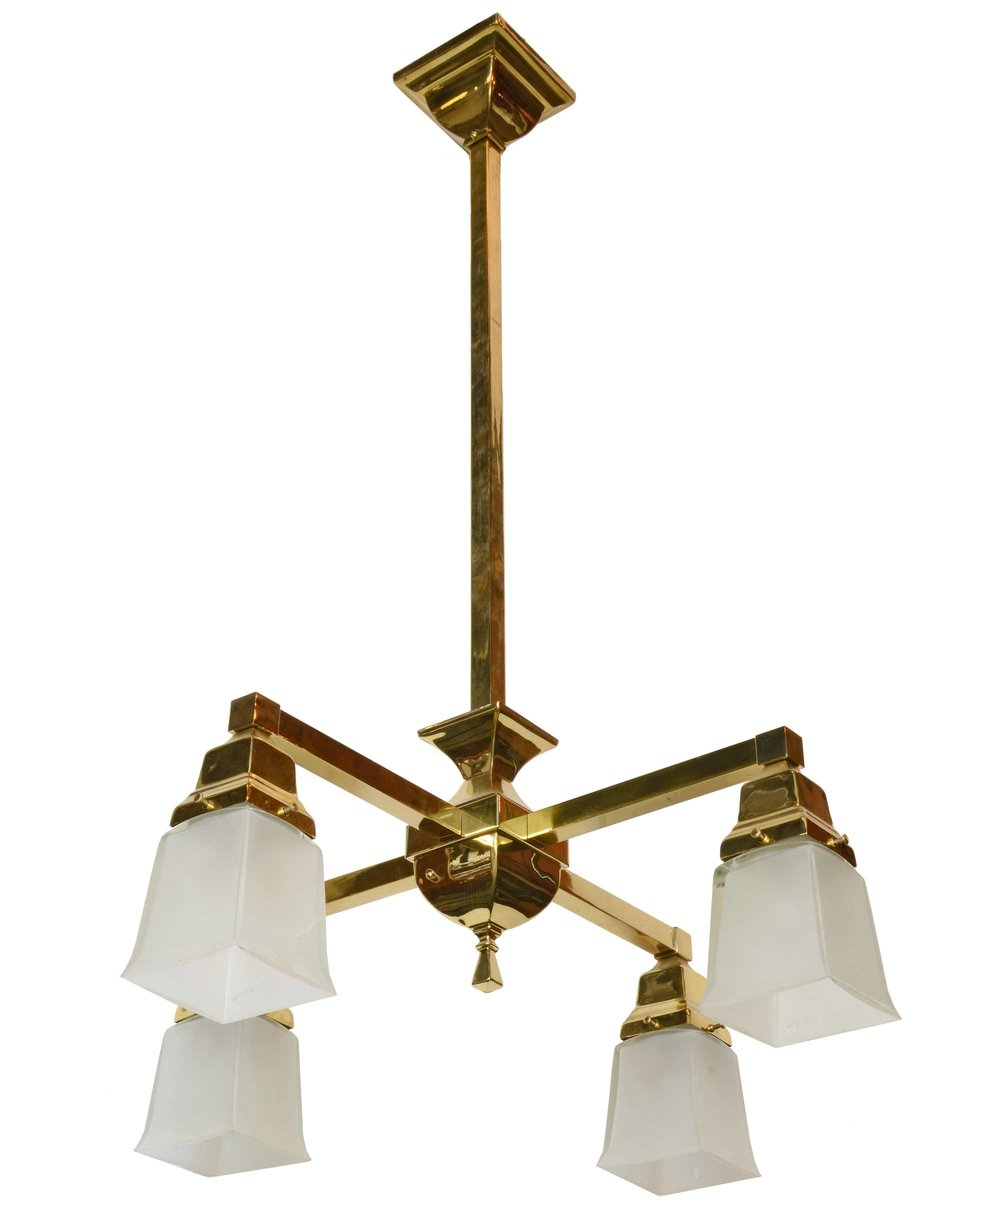 43464-4-arm-mission-chandelier-with-shades-angle.jpg